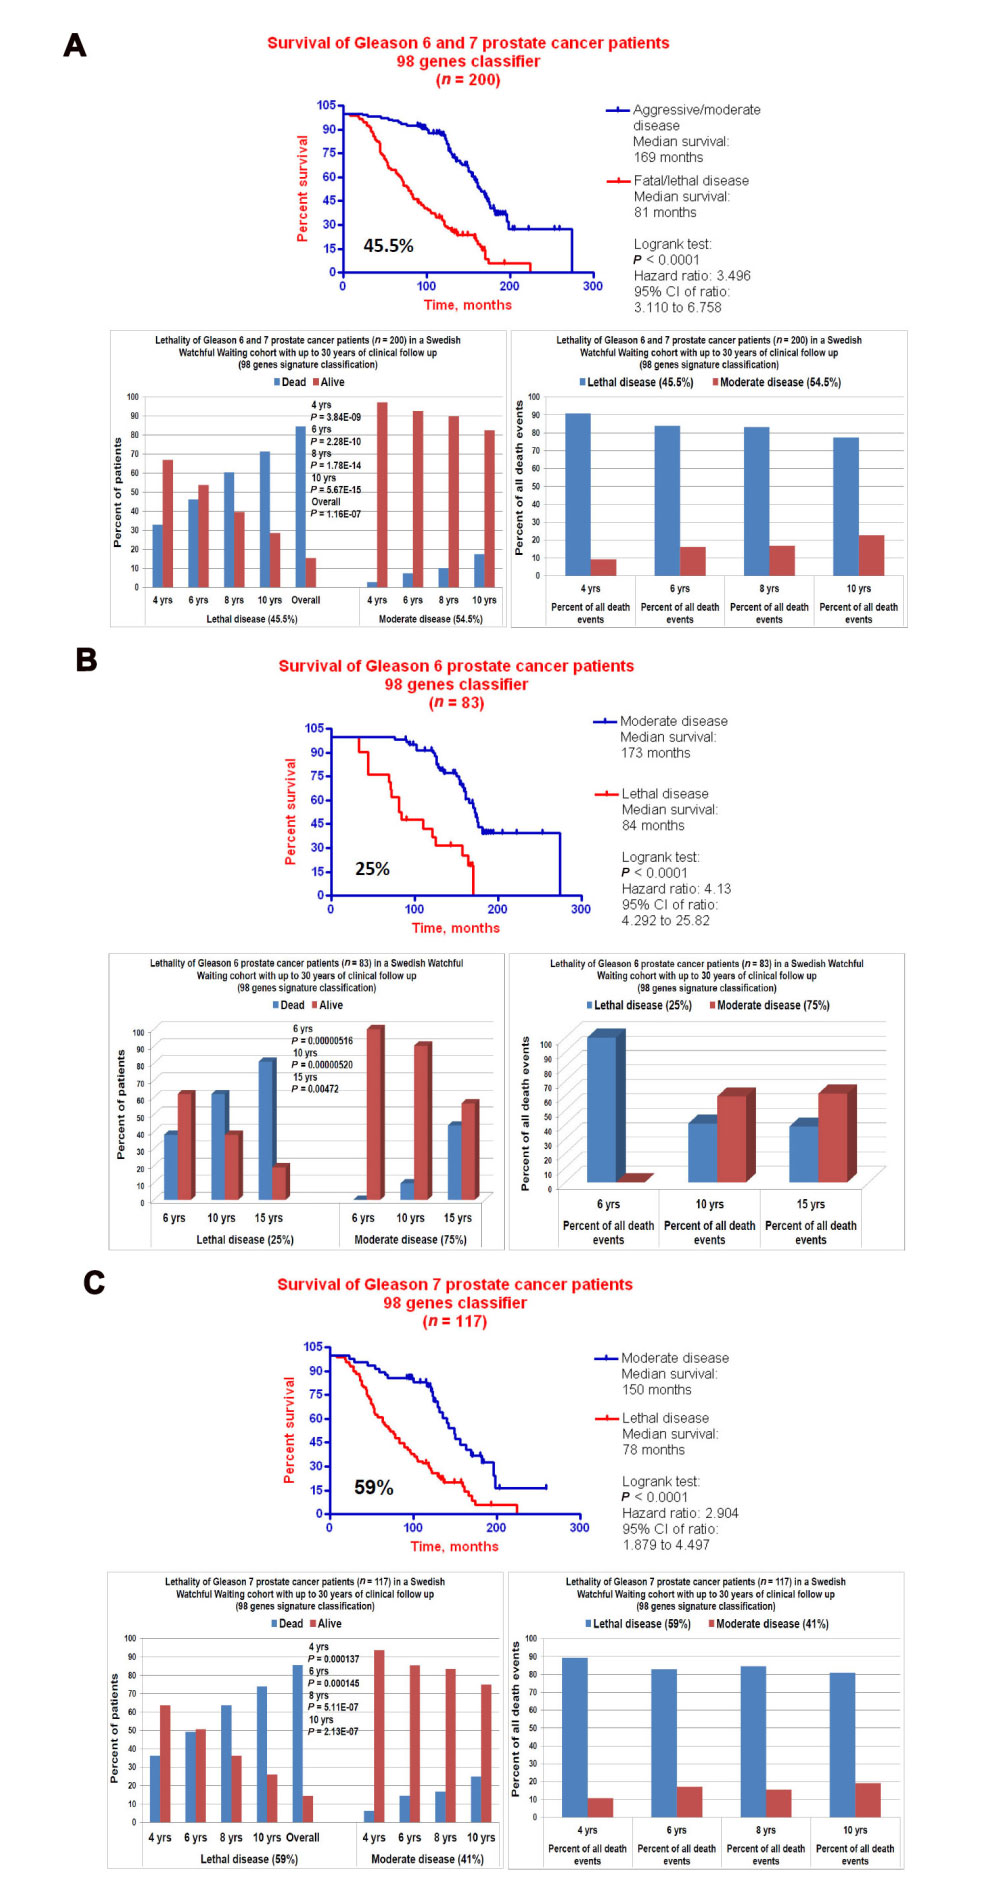 GES Based Identification Of Lethal Disease In Gleason 6 And 7 Prostate Cancer Patients Kaplan Meier Survival Analysis The Classification Performance